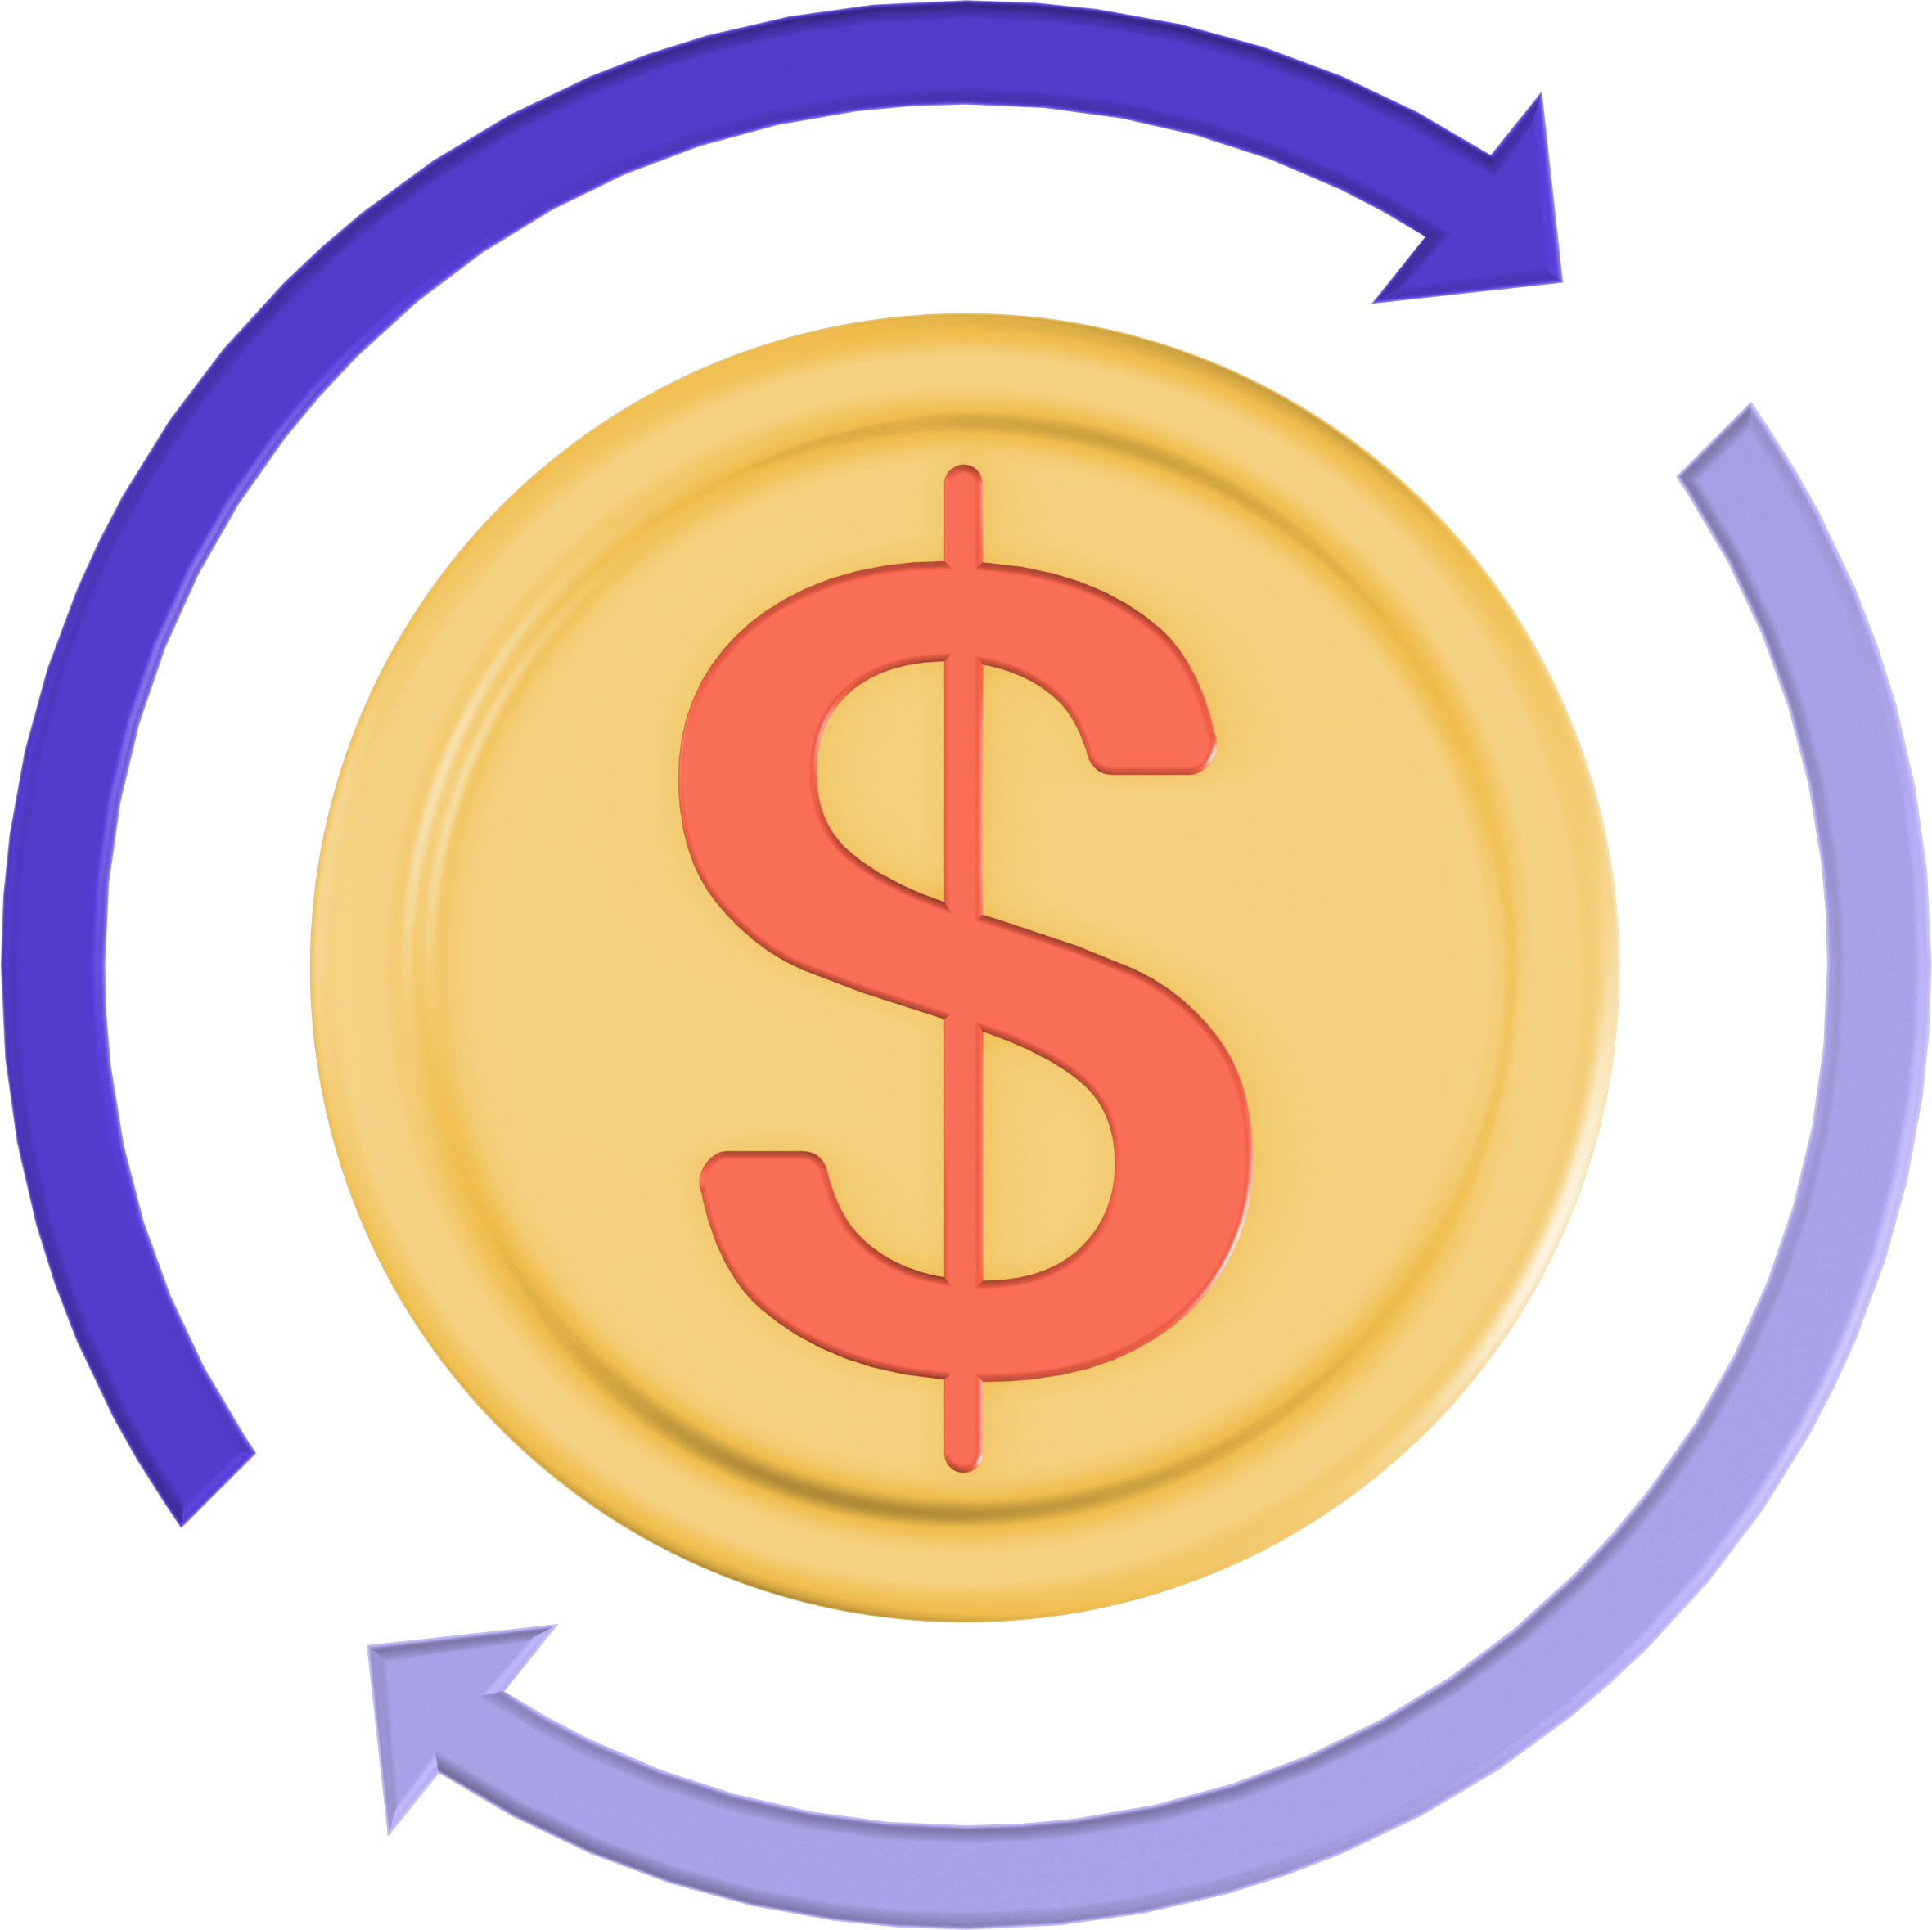 Dollar sign with two arrows going around it.